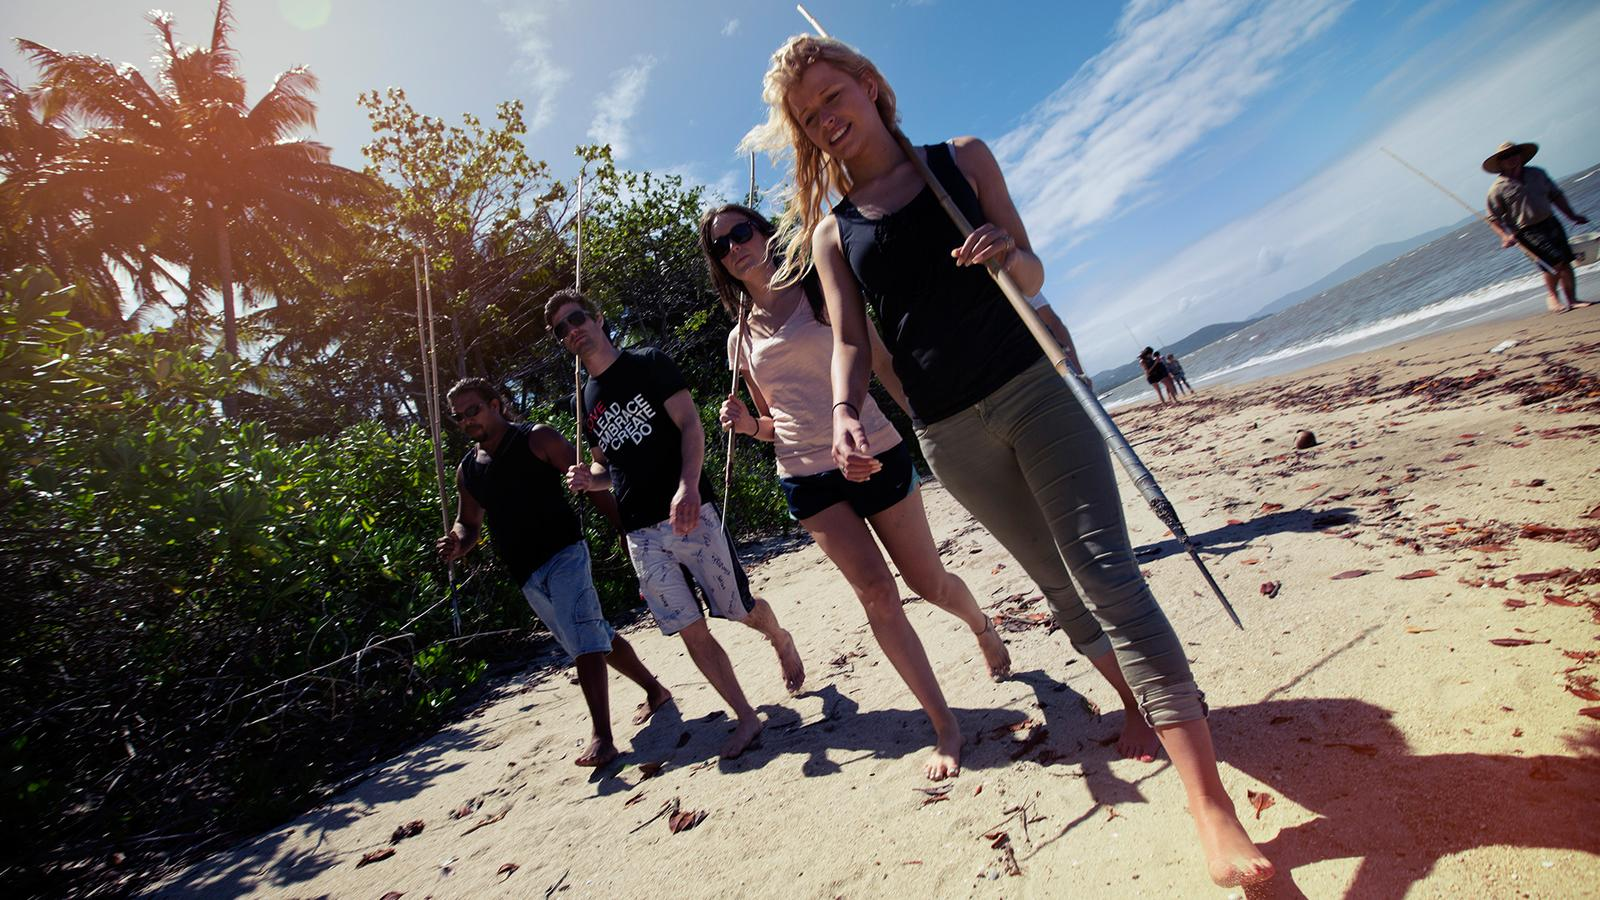 Four tourists walking along a beach in Queensland, Australia with fishing spears